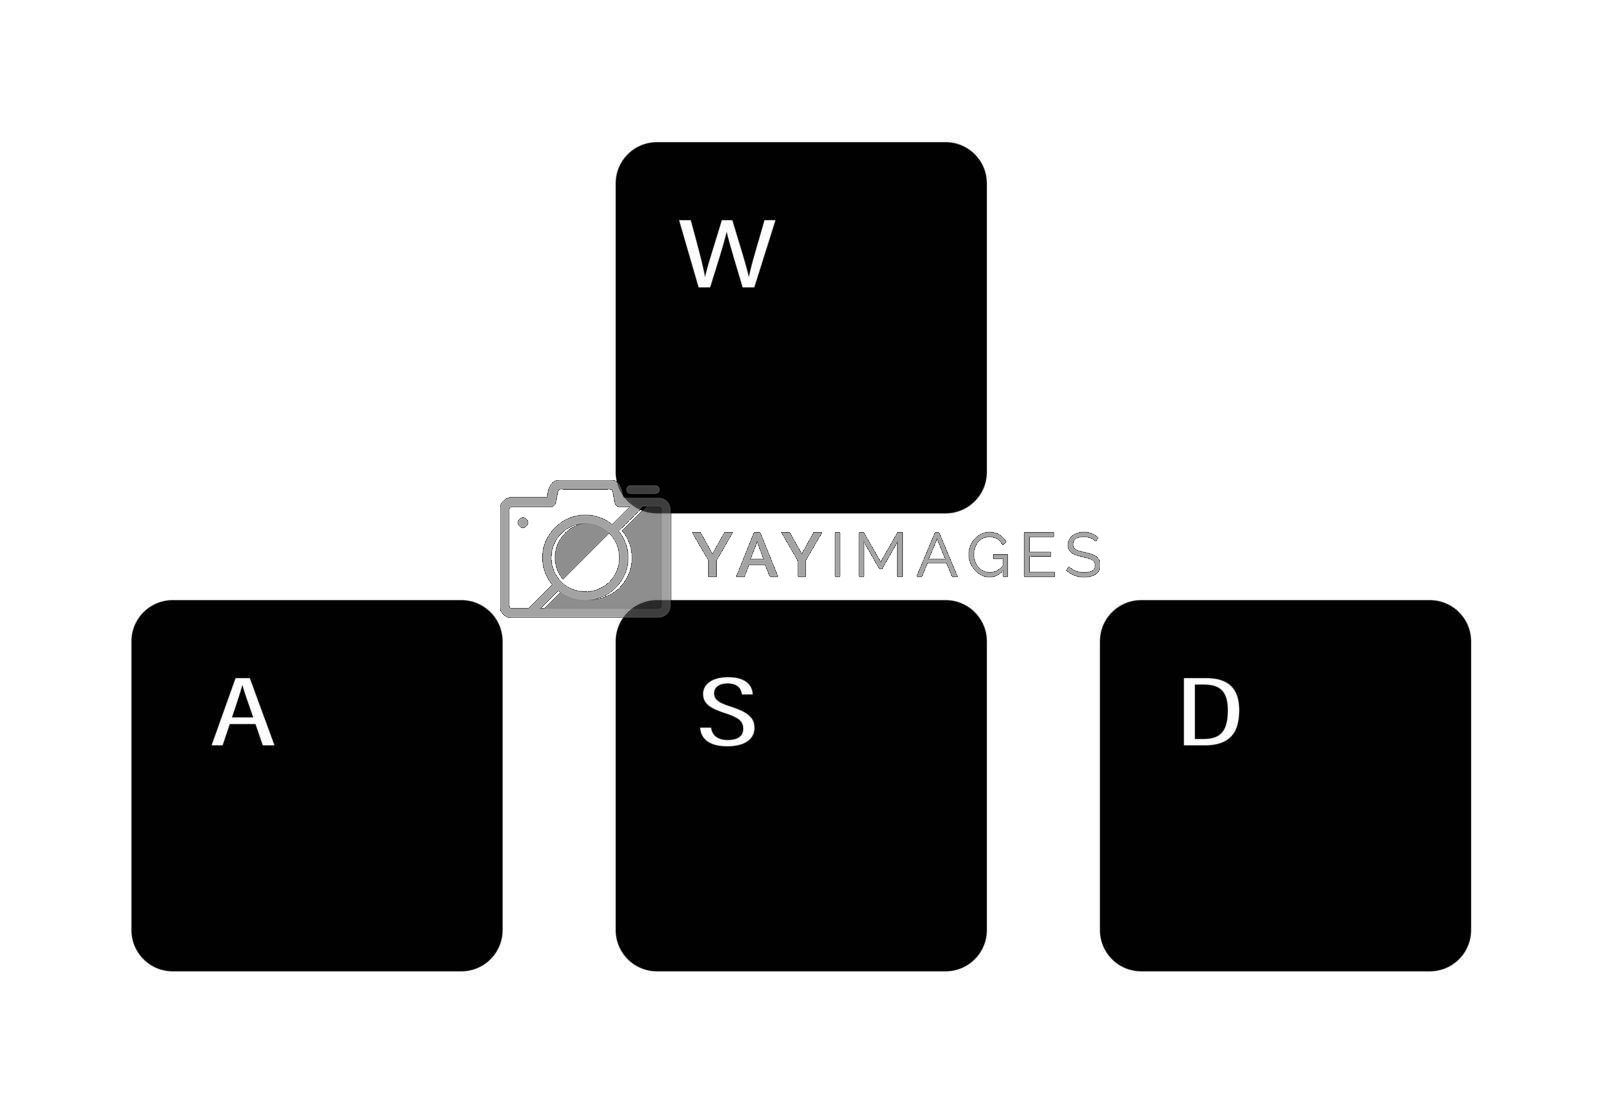 Set of gaming keyboard keys A W S D on a white background. Isolated vector